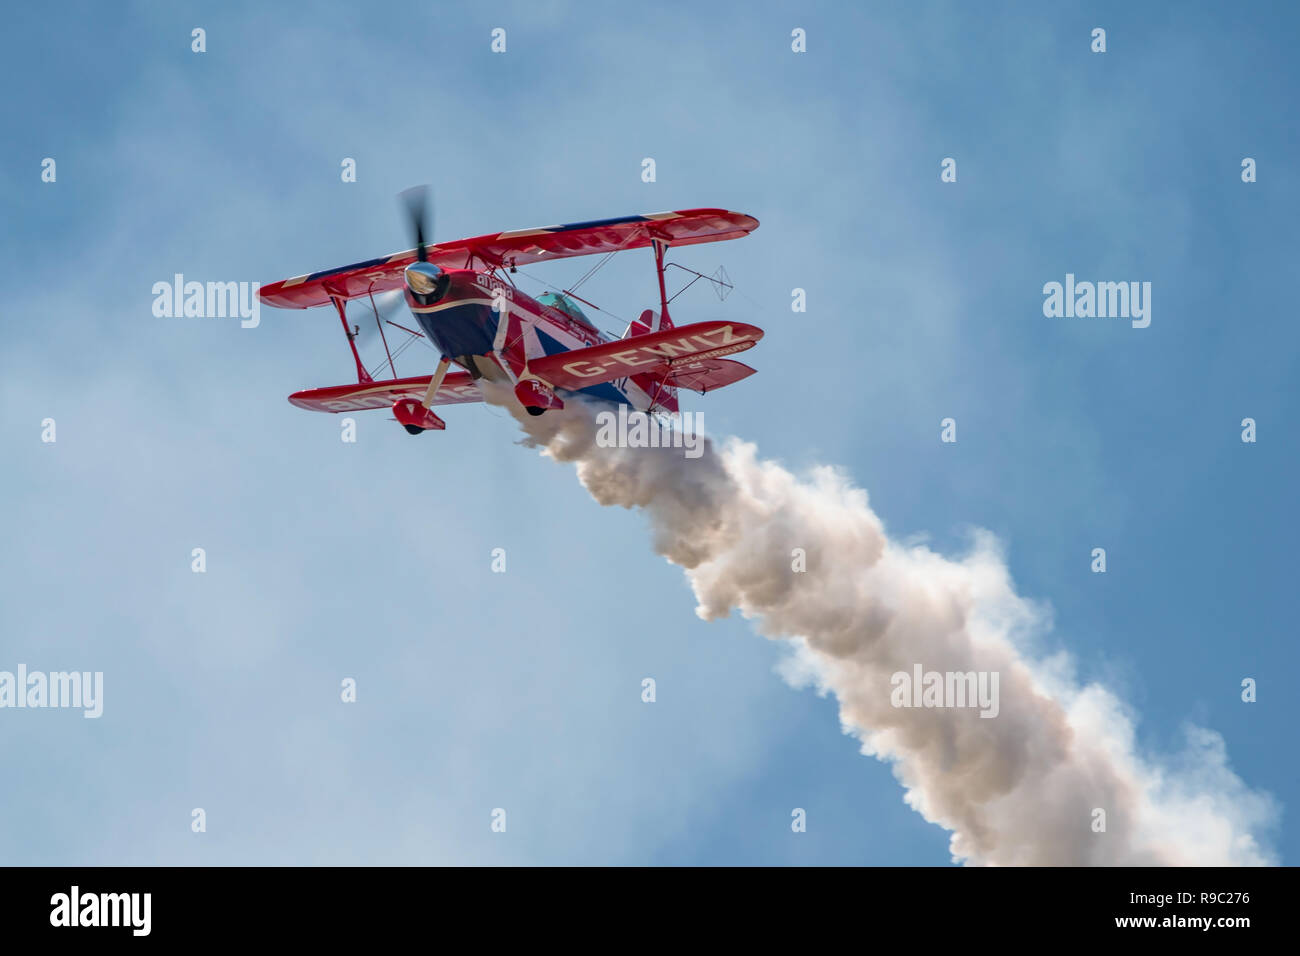 Rich Goodwin displaying the Pitts Special s-2s 'Muscle Biplane' at the RNAS Yeovilton International Air Day, UK on the 7th July 2018. - Stock Image